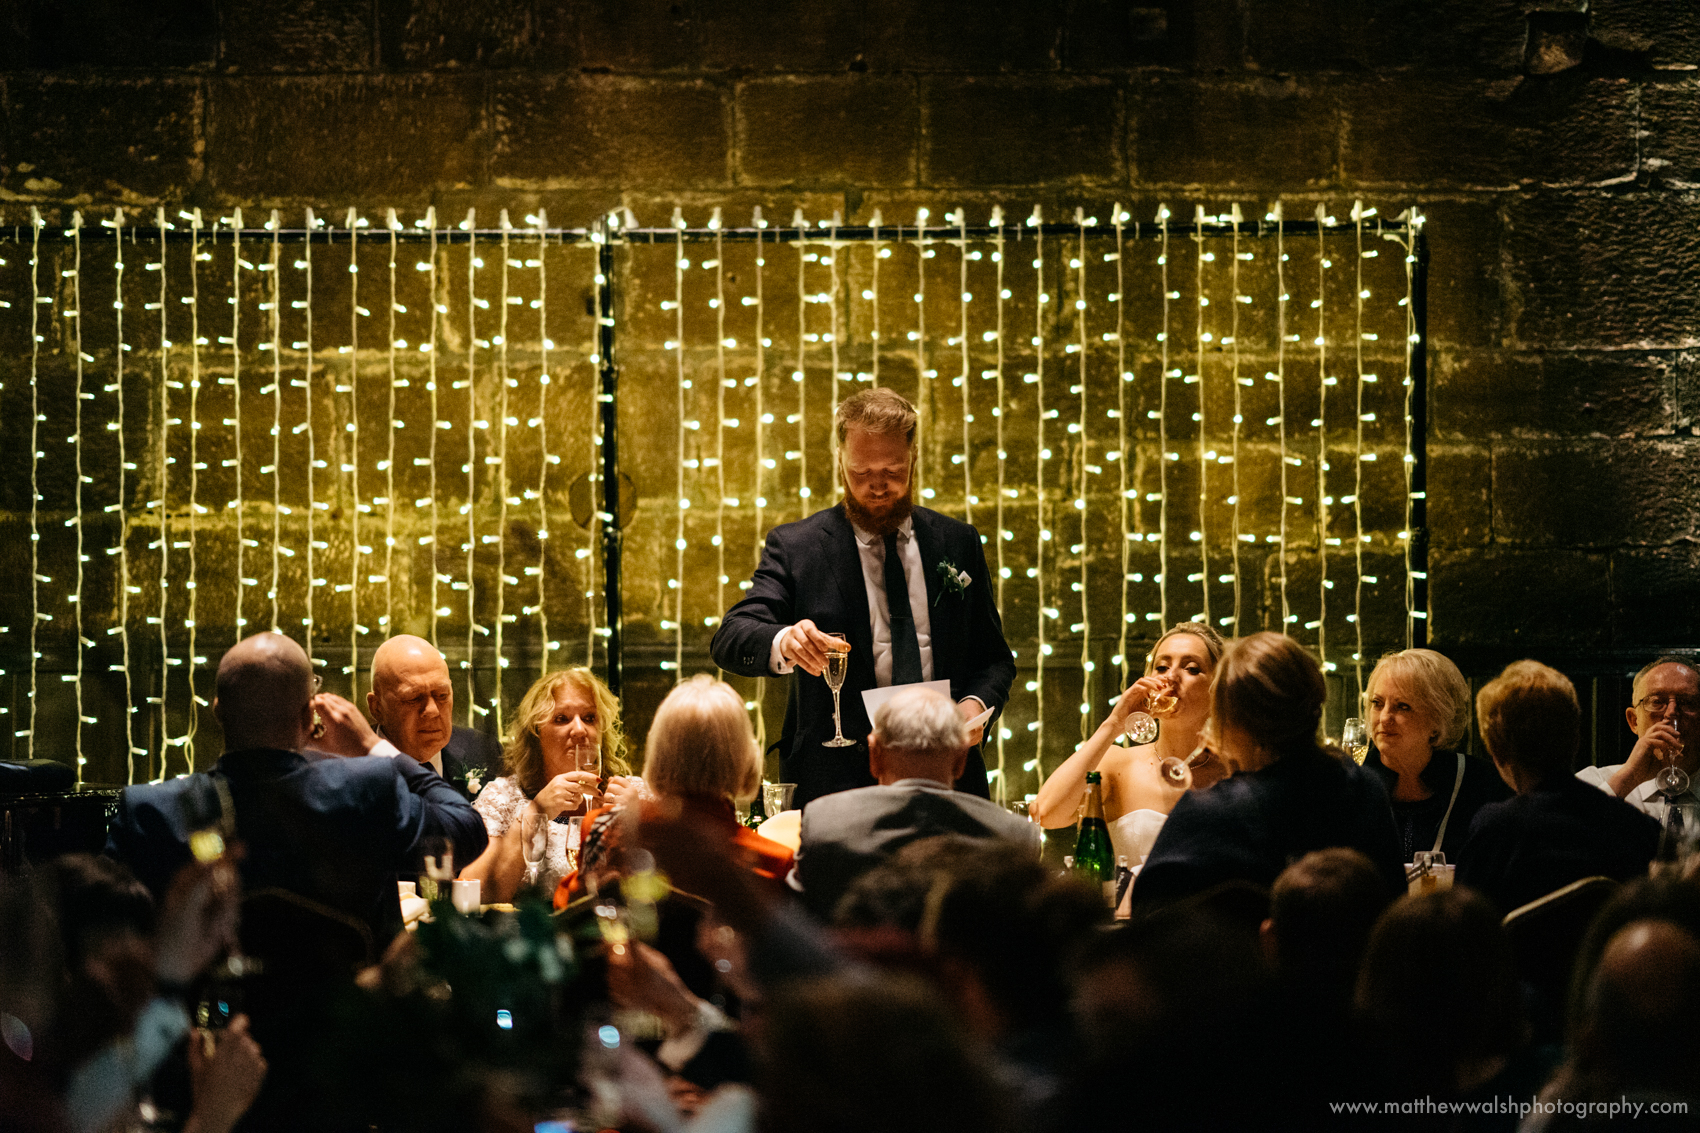 The groom makes a toast to his lovely new wife